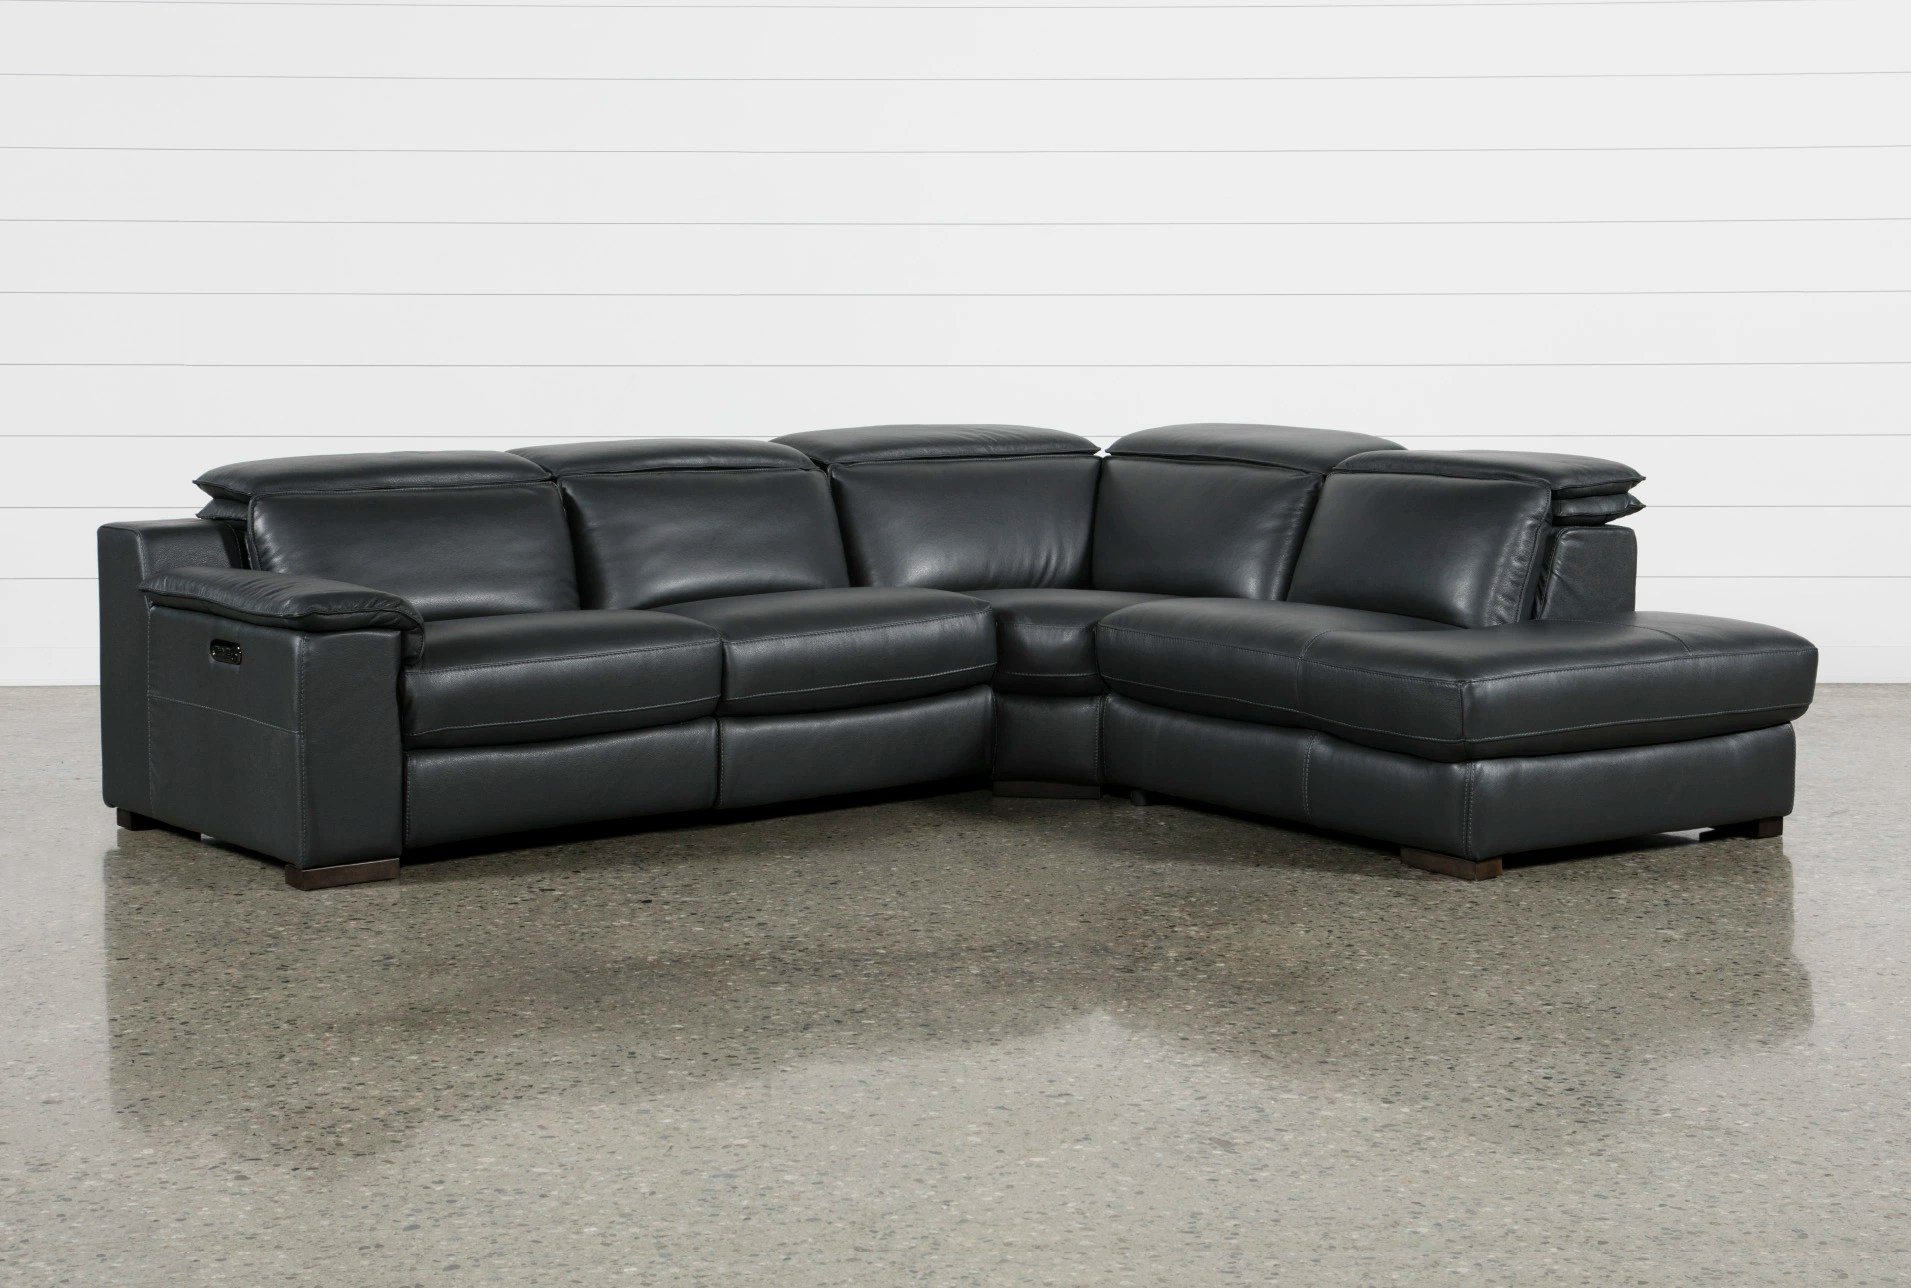 recliner sectional sleeper sofa apartment sofas and loveseats sectionals living spaces hana slate leather 3 piece power reclining with right facing chaise